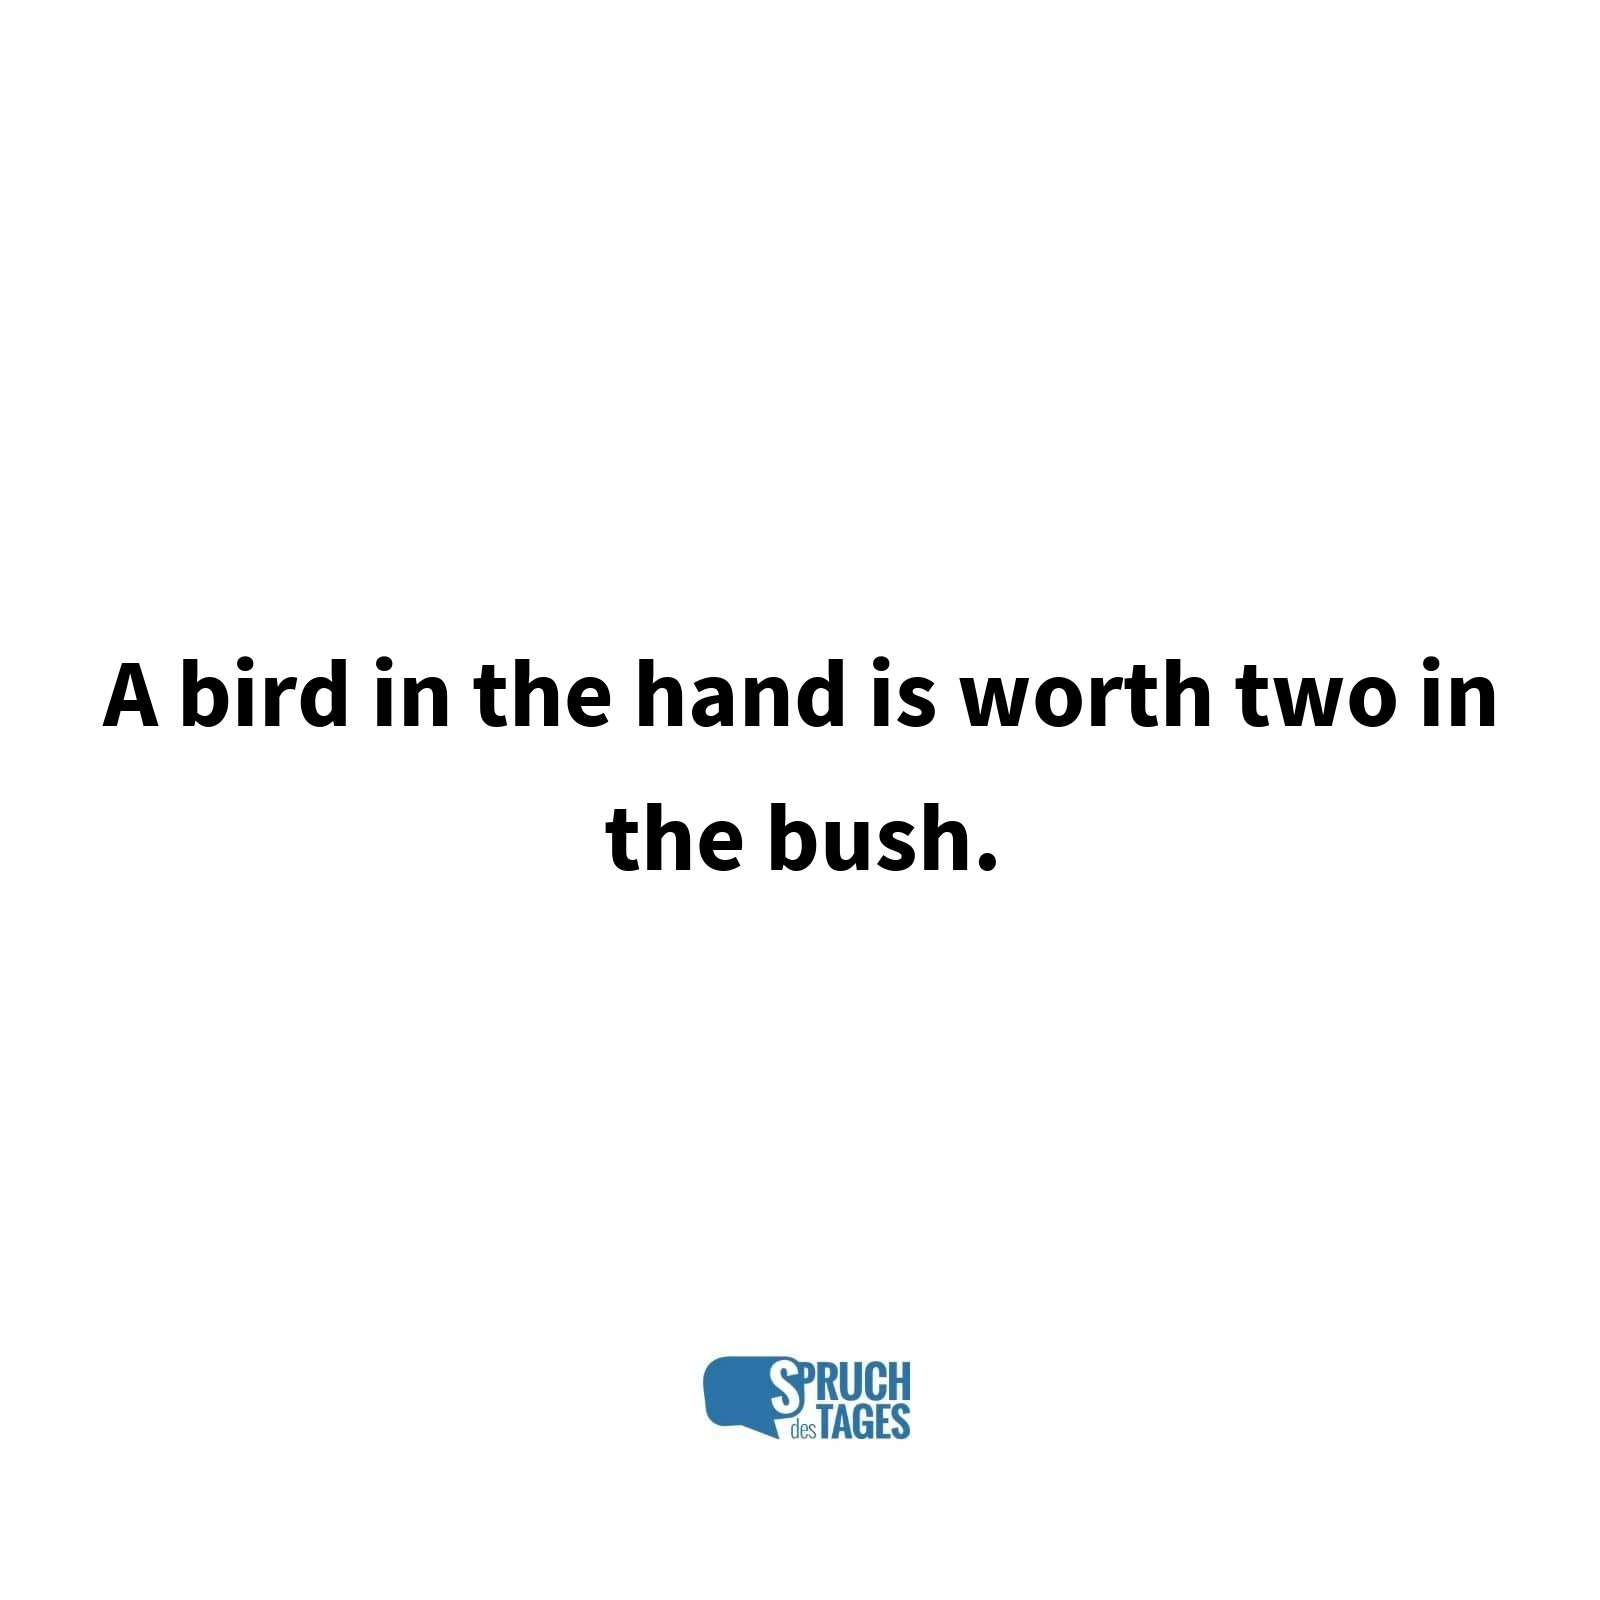 A bird in the hand is worth two in the bush.